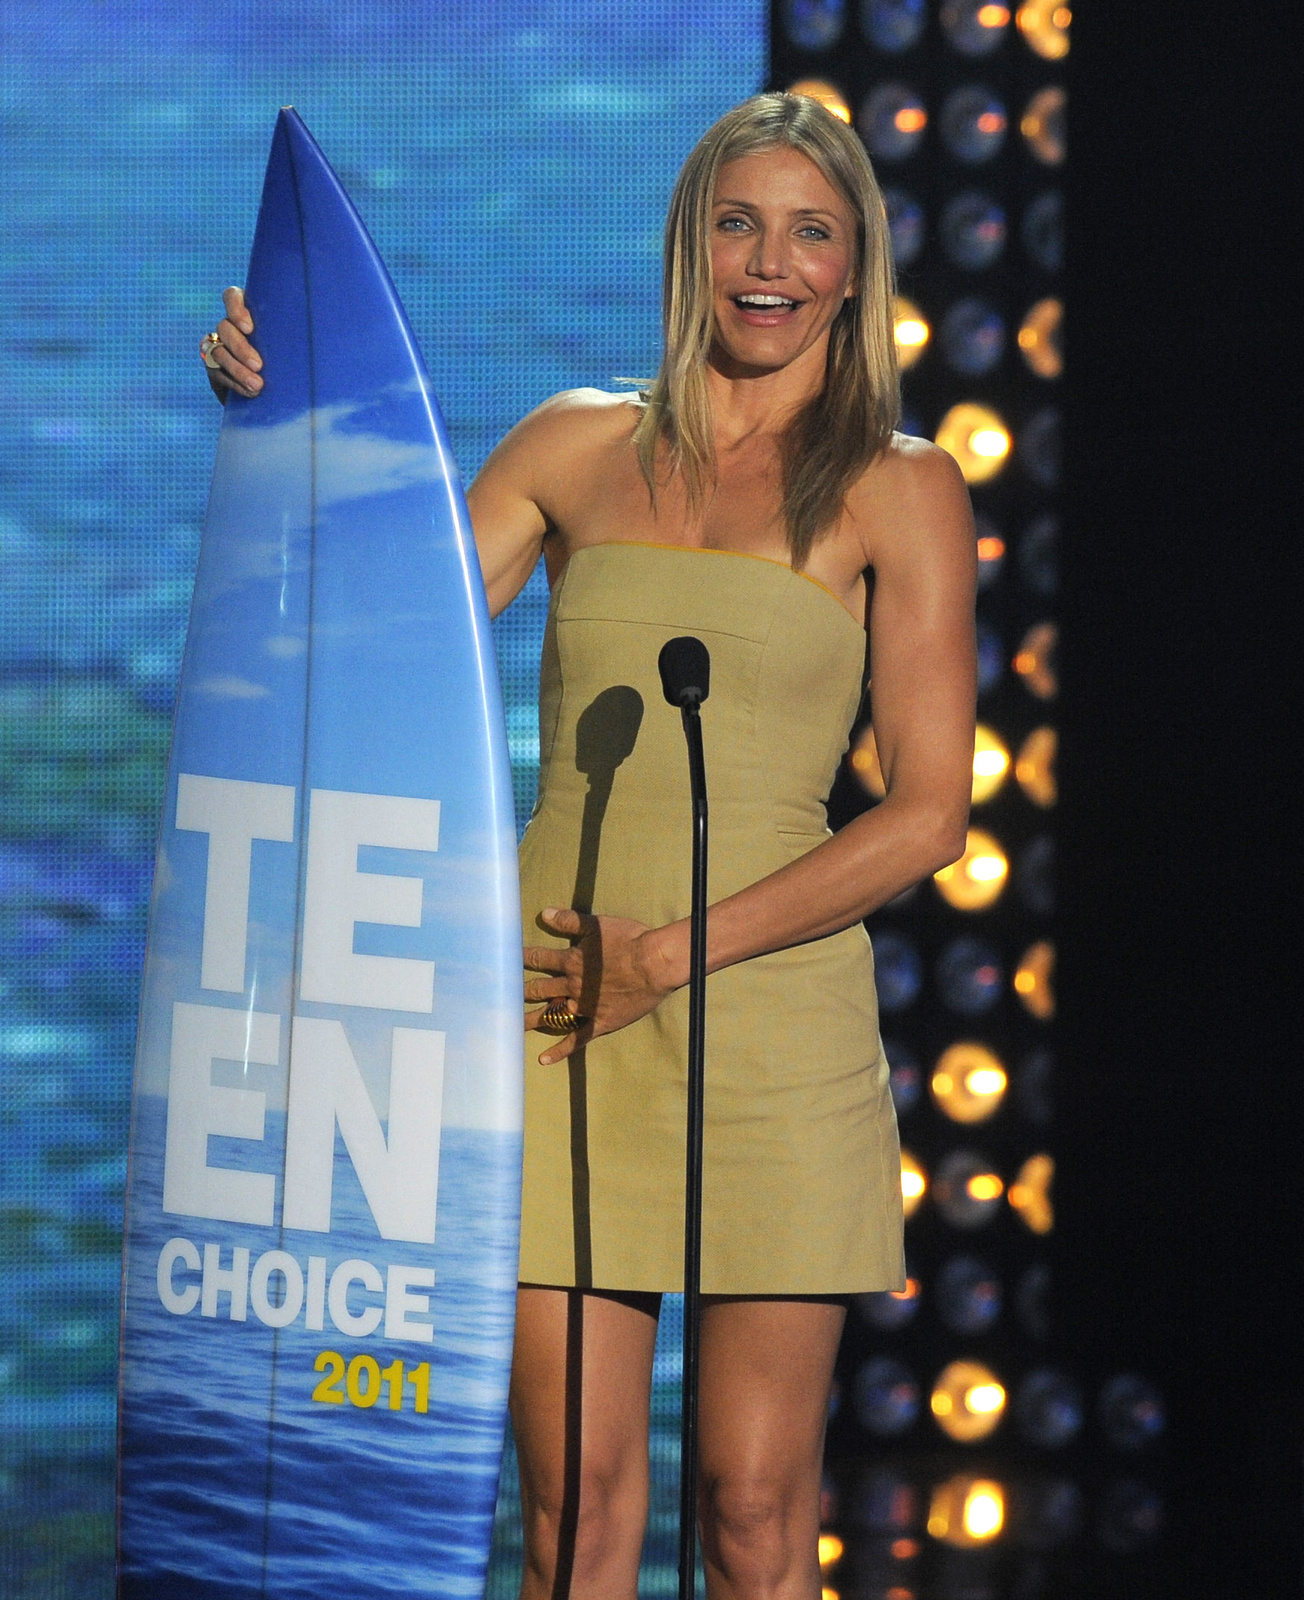 The Winners Of Teen Choice Awards 2011